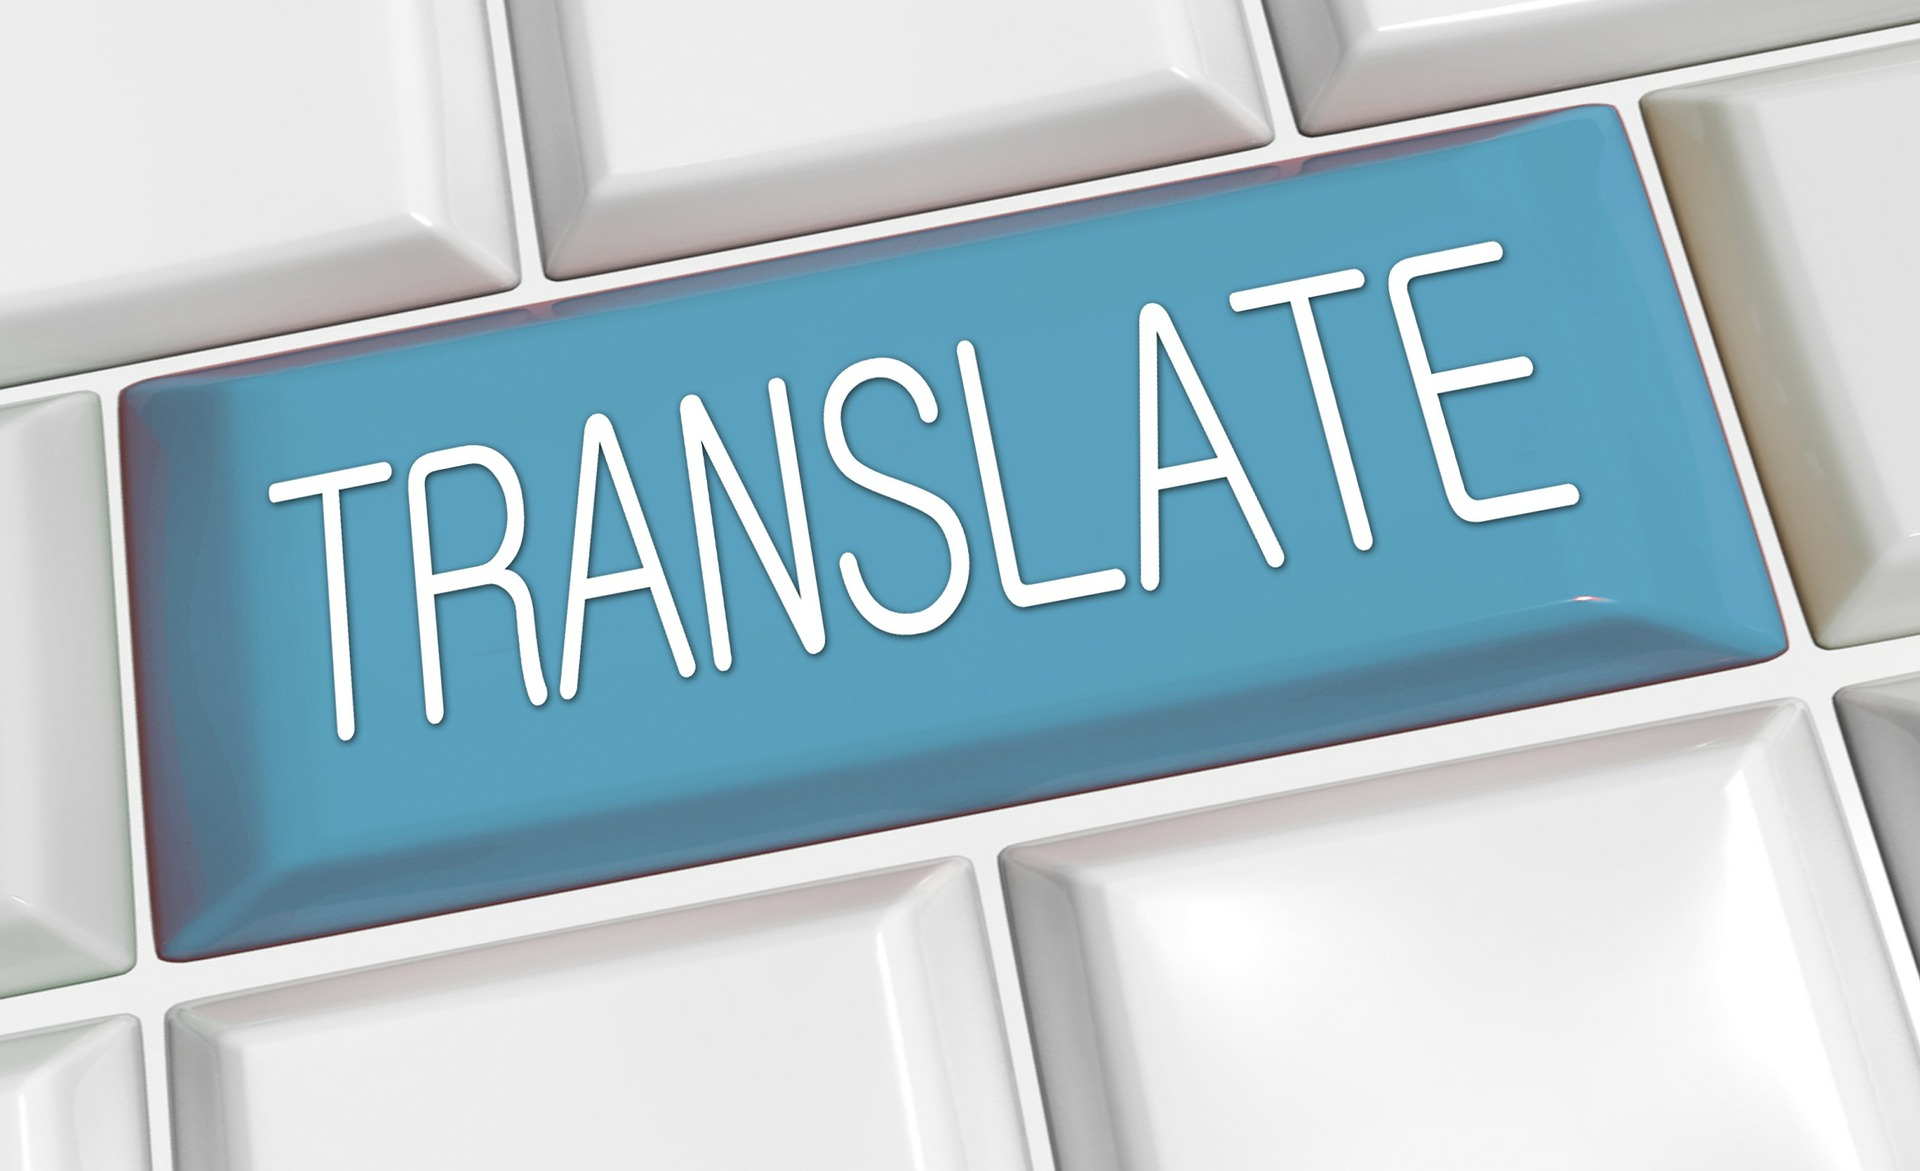 Enuncia Global provides the most cost effective and widest range of Certified Translation Language Services language pairs